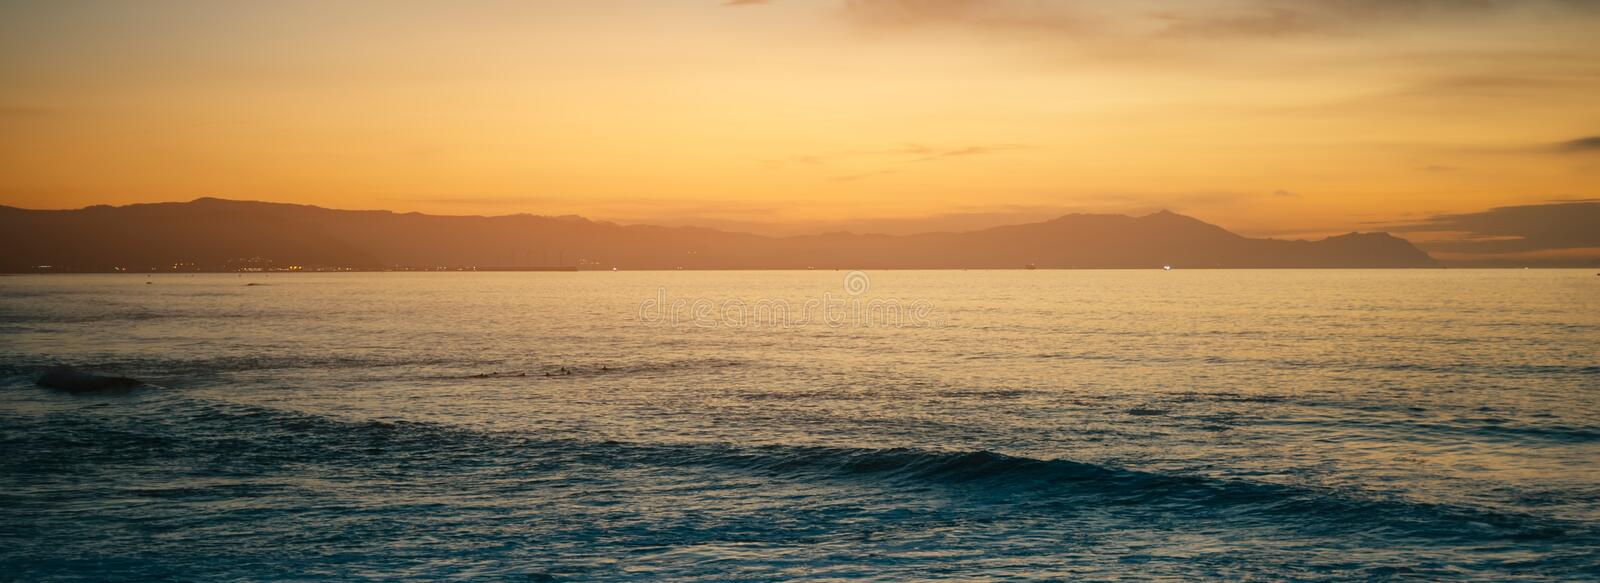 Clouds blue sky and gold sunlight sunset on horizon ocean, background seascape dramatic atmosphere rays sunrise. Relax view waves. Sea with ship, mockup nature stock images